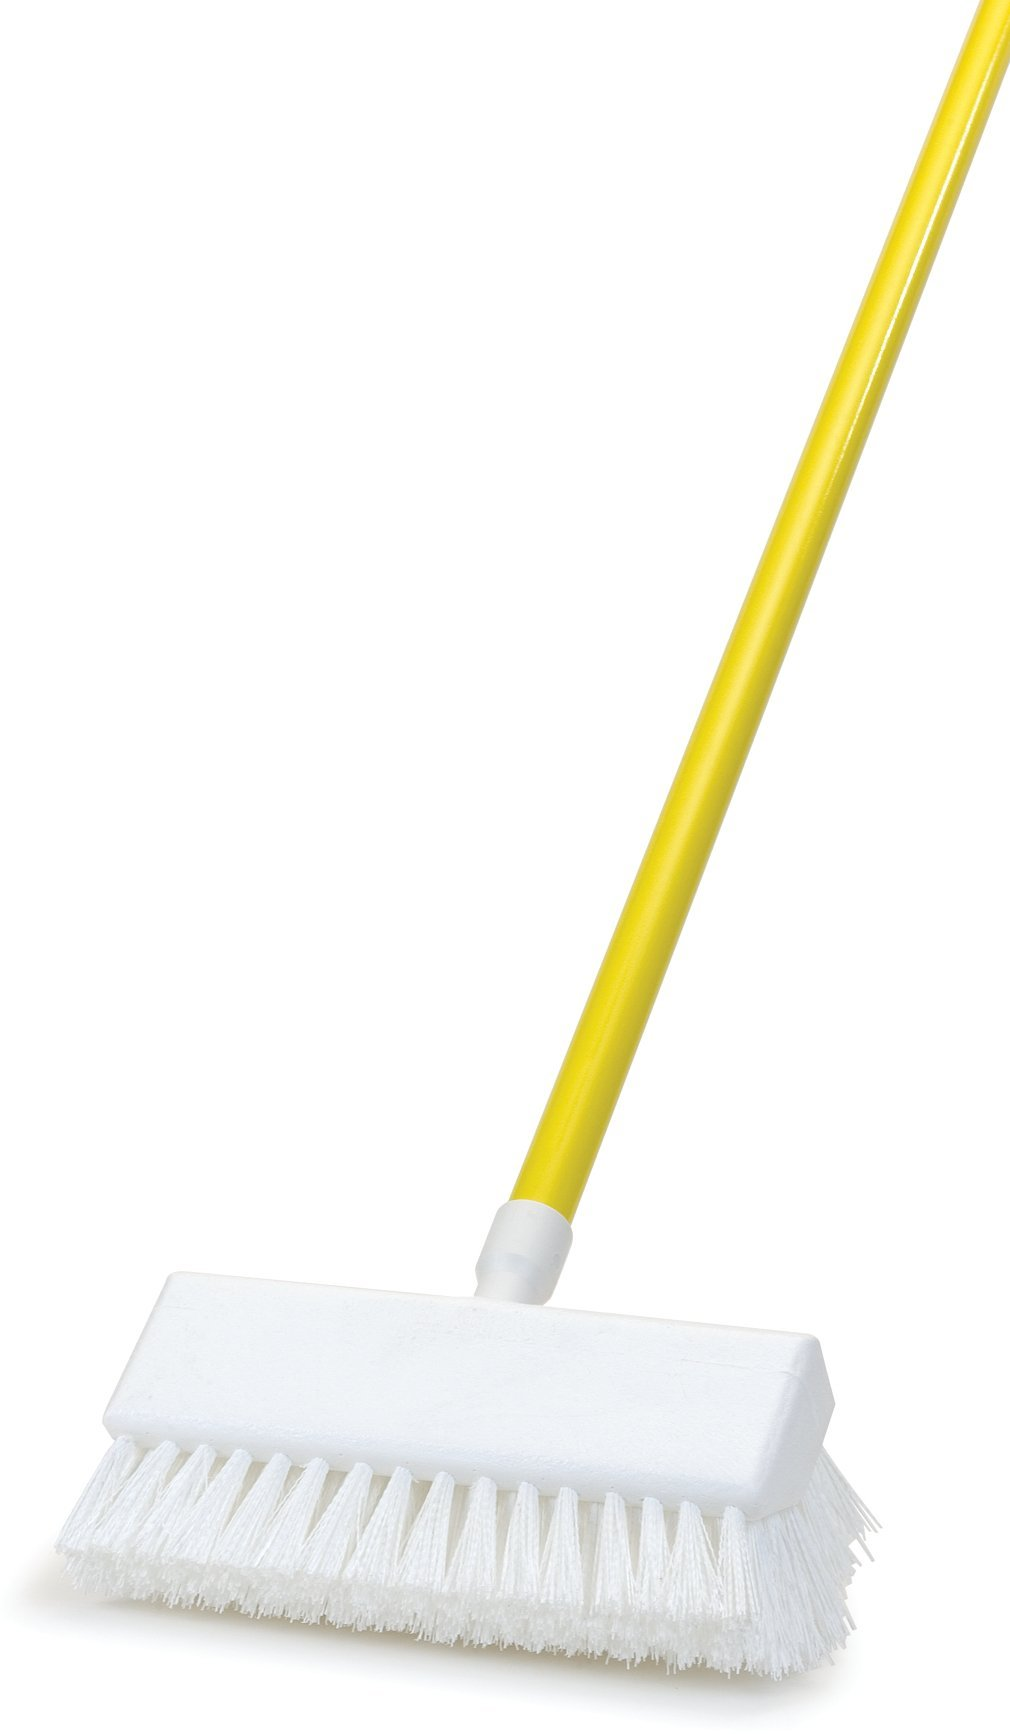 Carlisle 4022504 Sparta Commercial Fiberglass Handle with Self-Locking Flex-Tip, 60'', Yellow (Pack of 12) by Carlisle (Image #9)